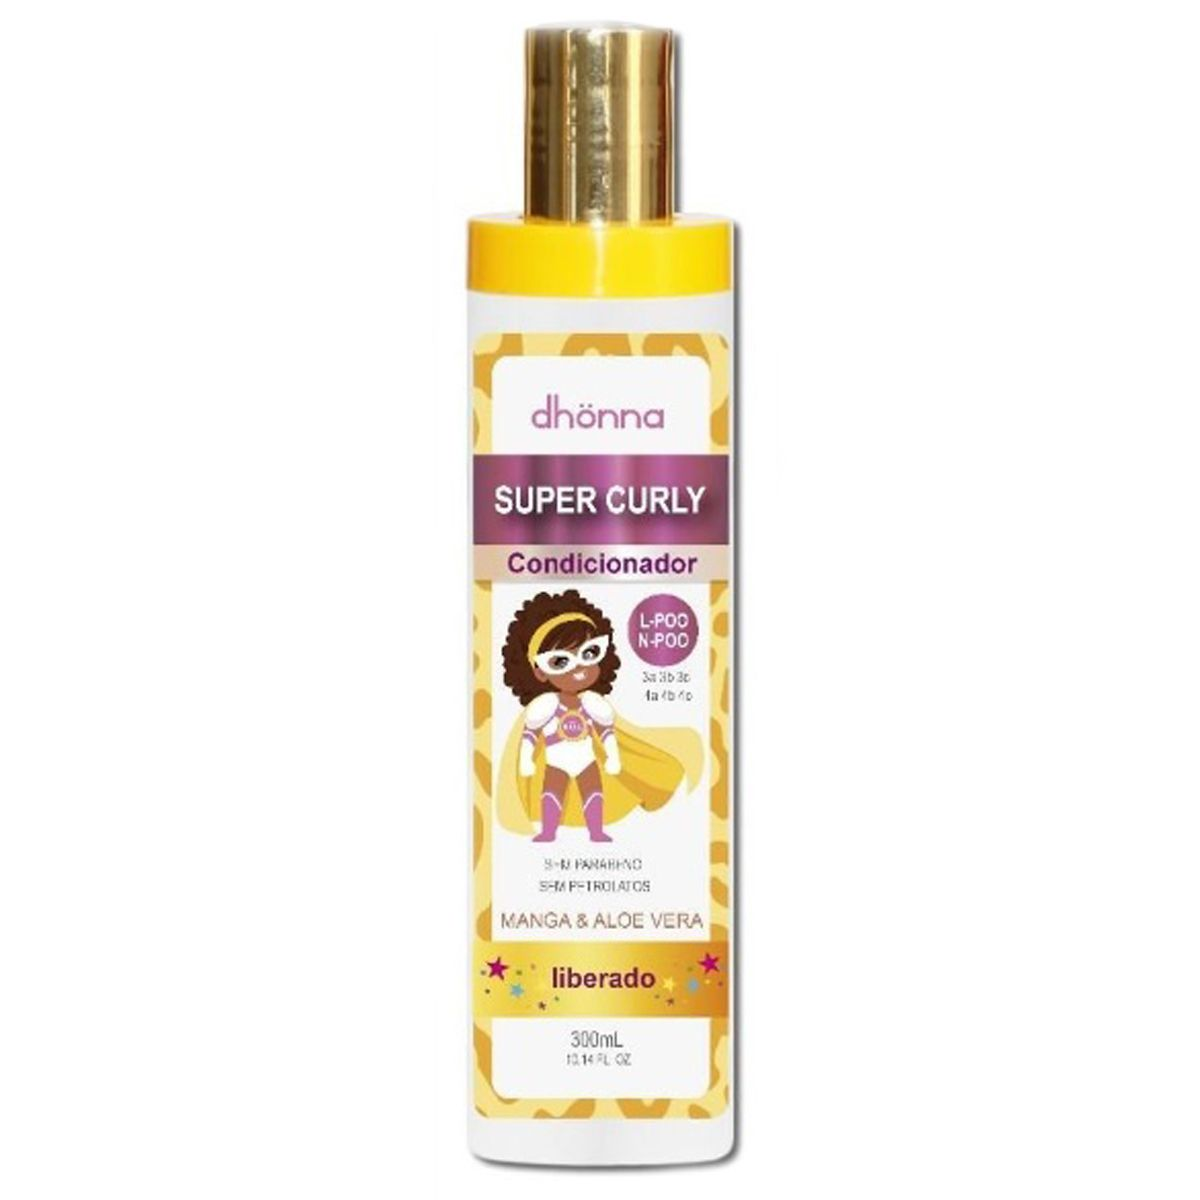 Dhonna - Super Curly - Condicionador - 300ml